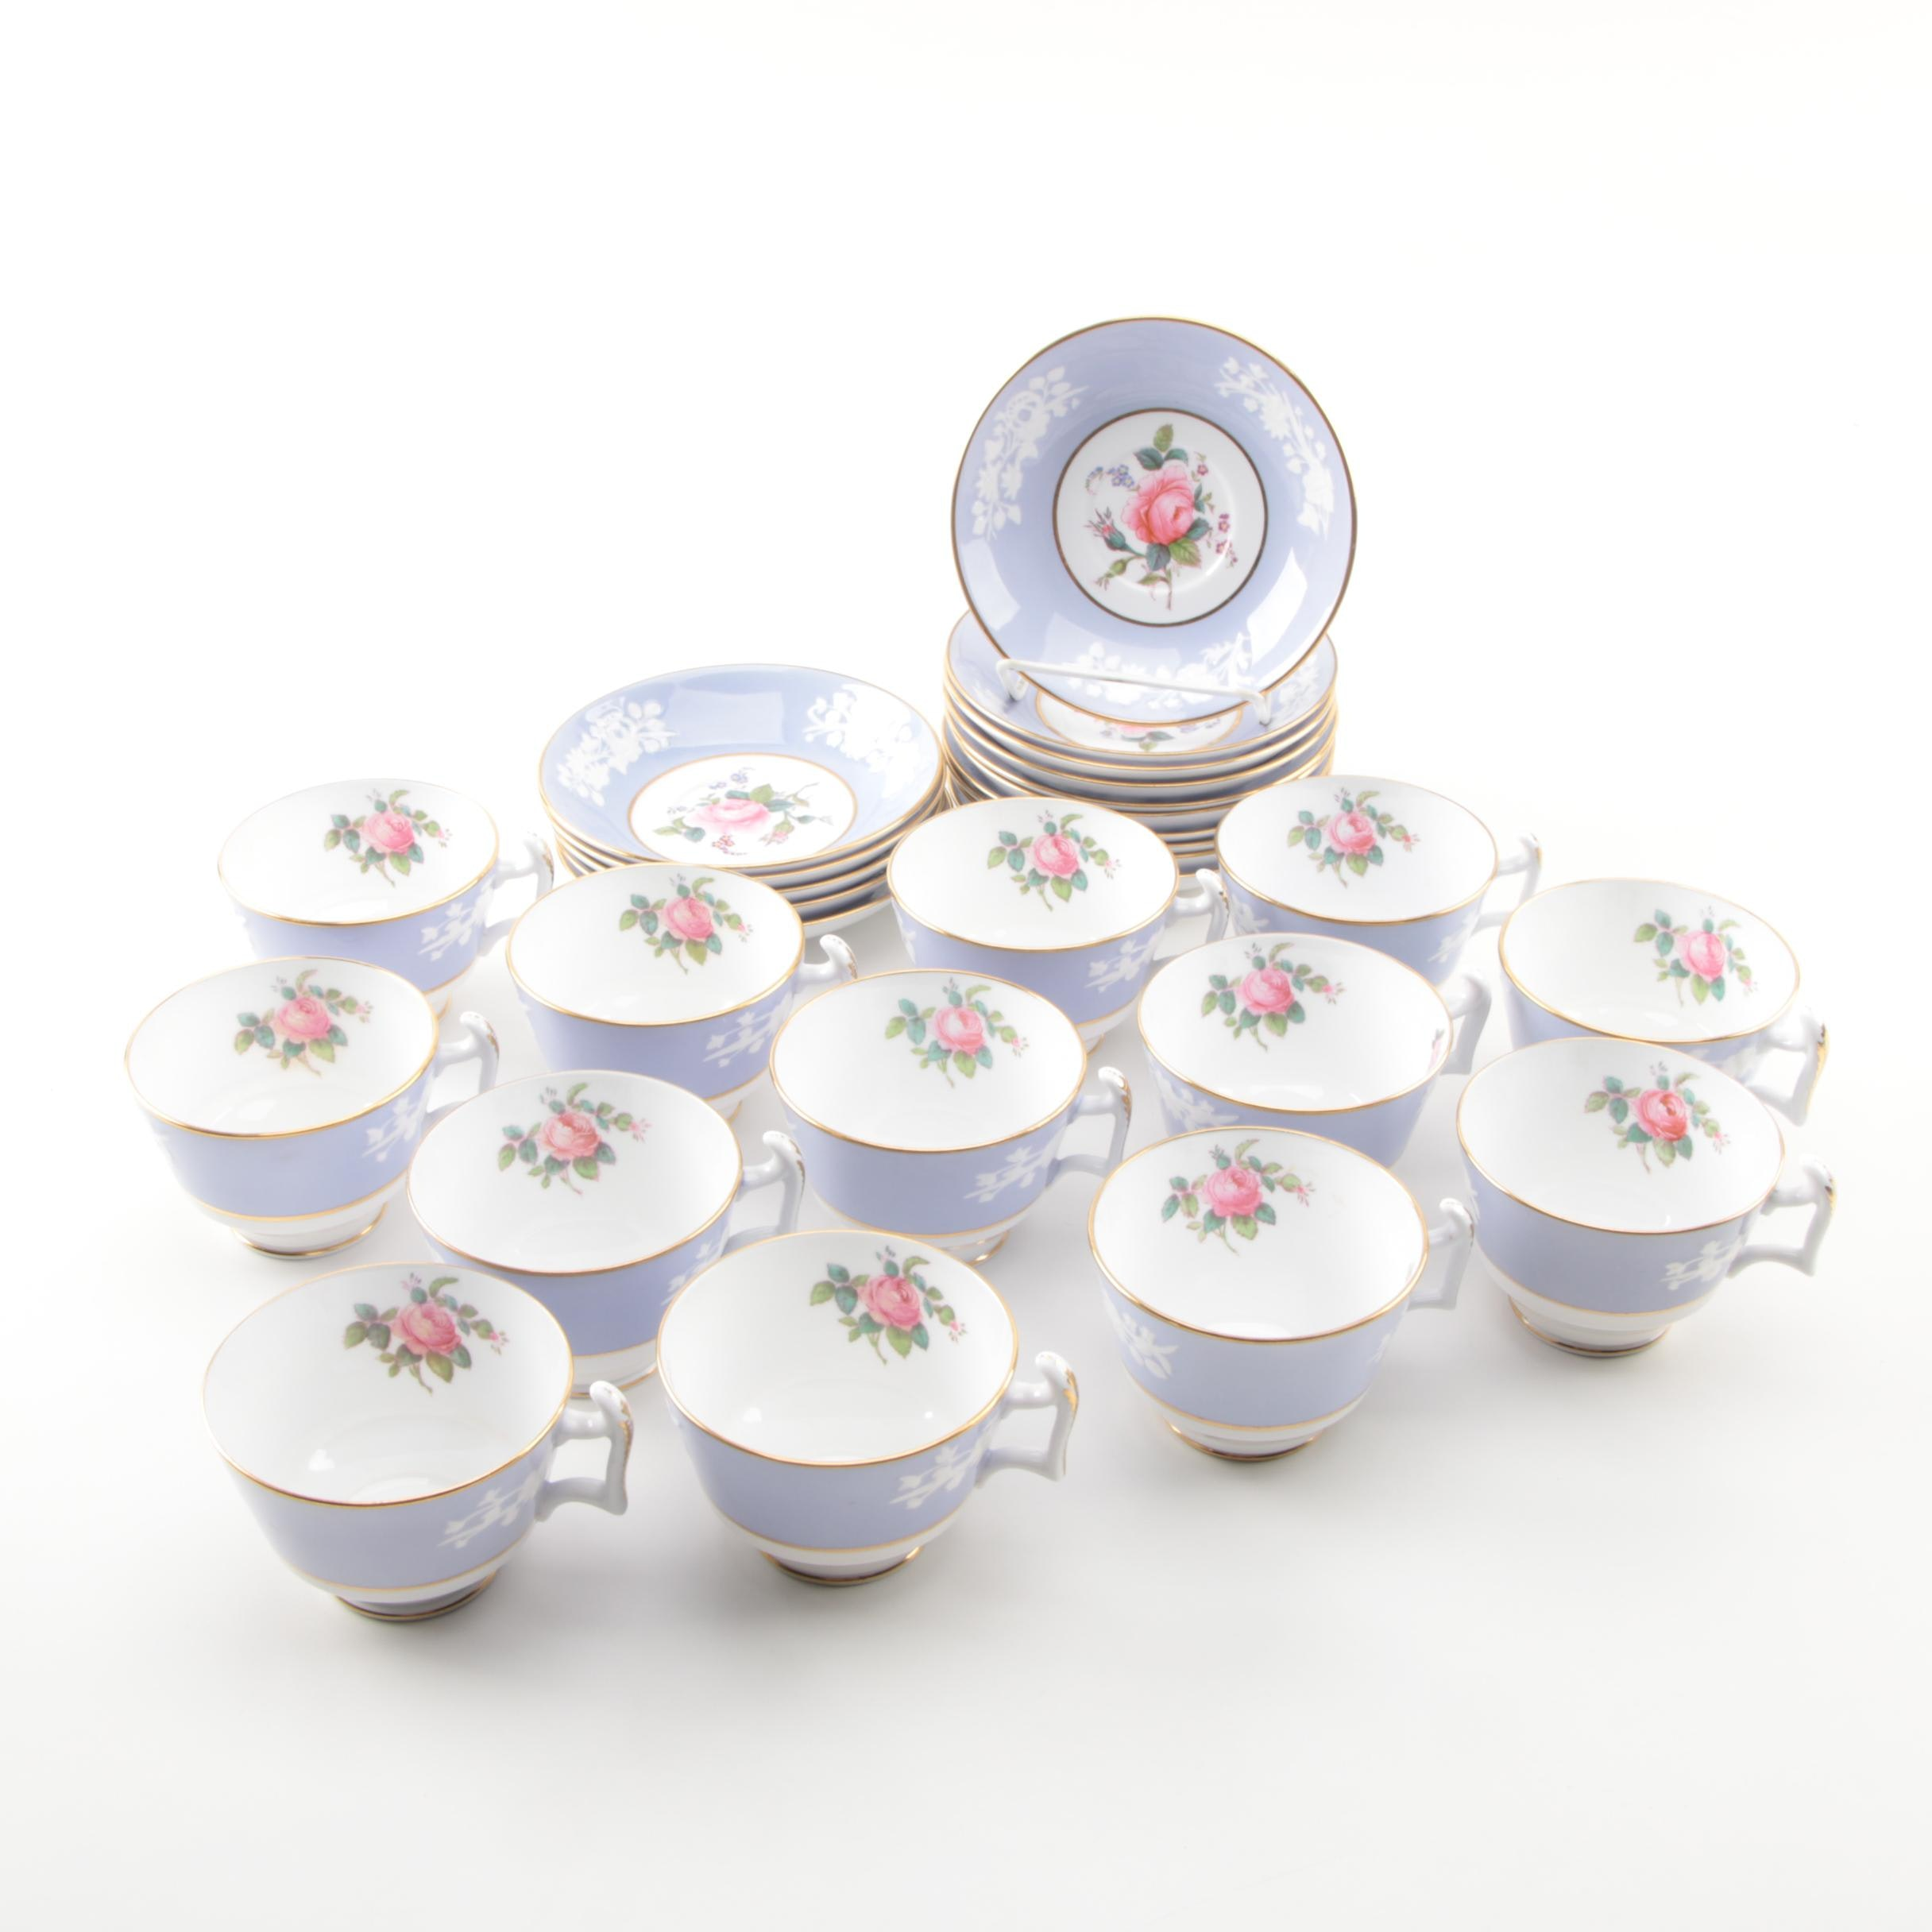 "Vintage Copeland Spode ""Maritime Rose"" Porcelain Teacups and Saucers"